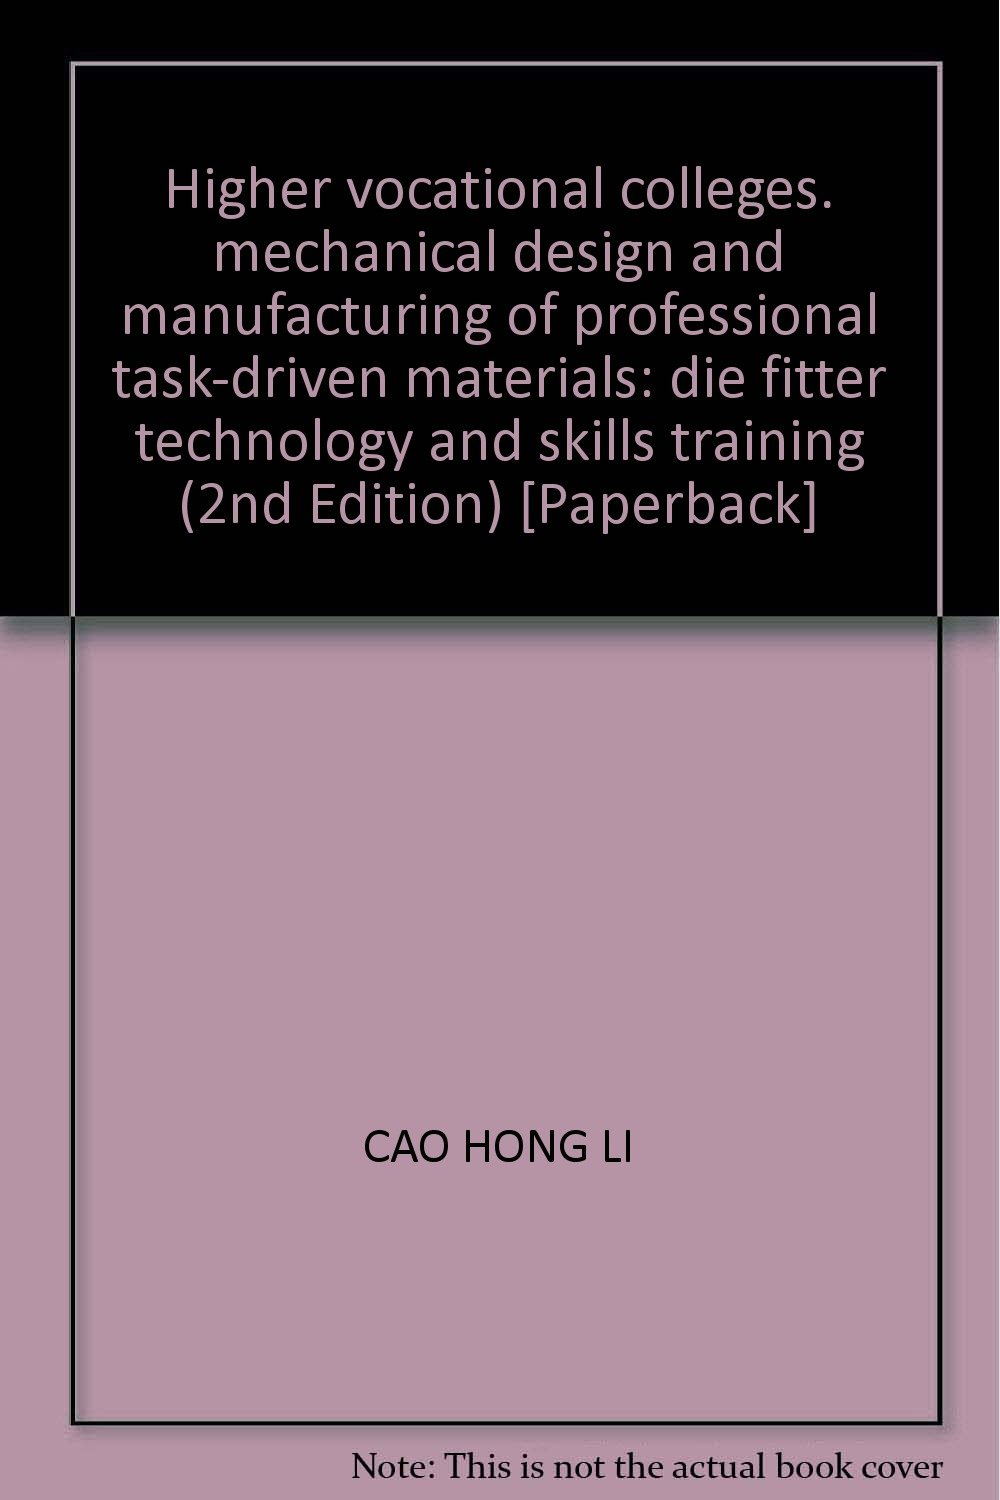 Higher vocational colleges. mechanical design and manufacturing of professional task-driven materials: die fitter technology and skills training (2nd Edition) [Paperback] pdf